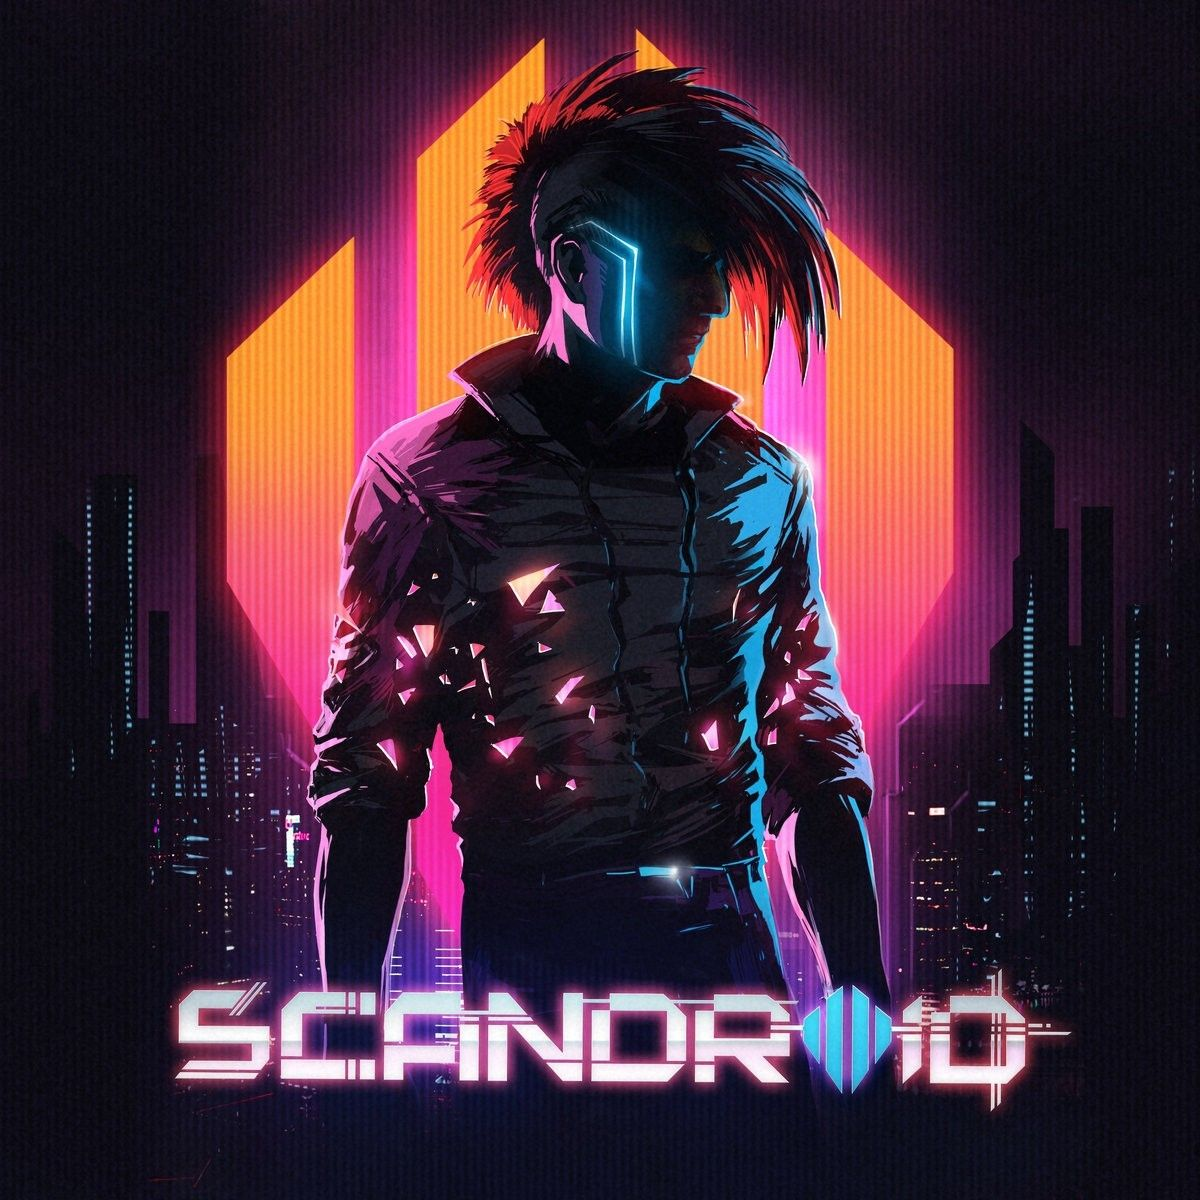 Pin by Valentin Burov on Virtuality Synthwave, Synthwave